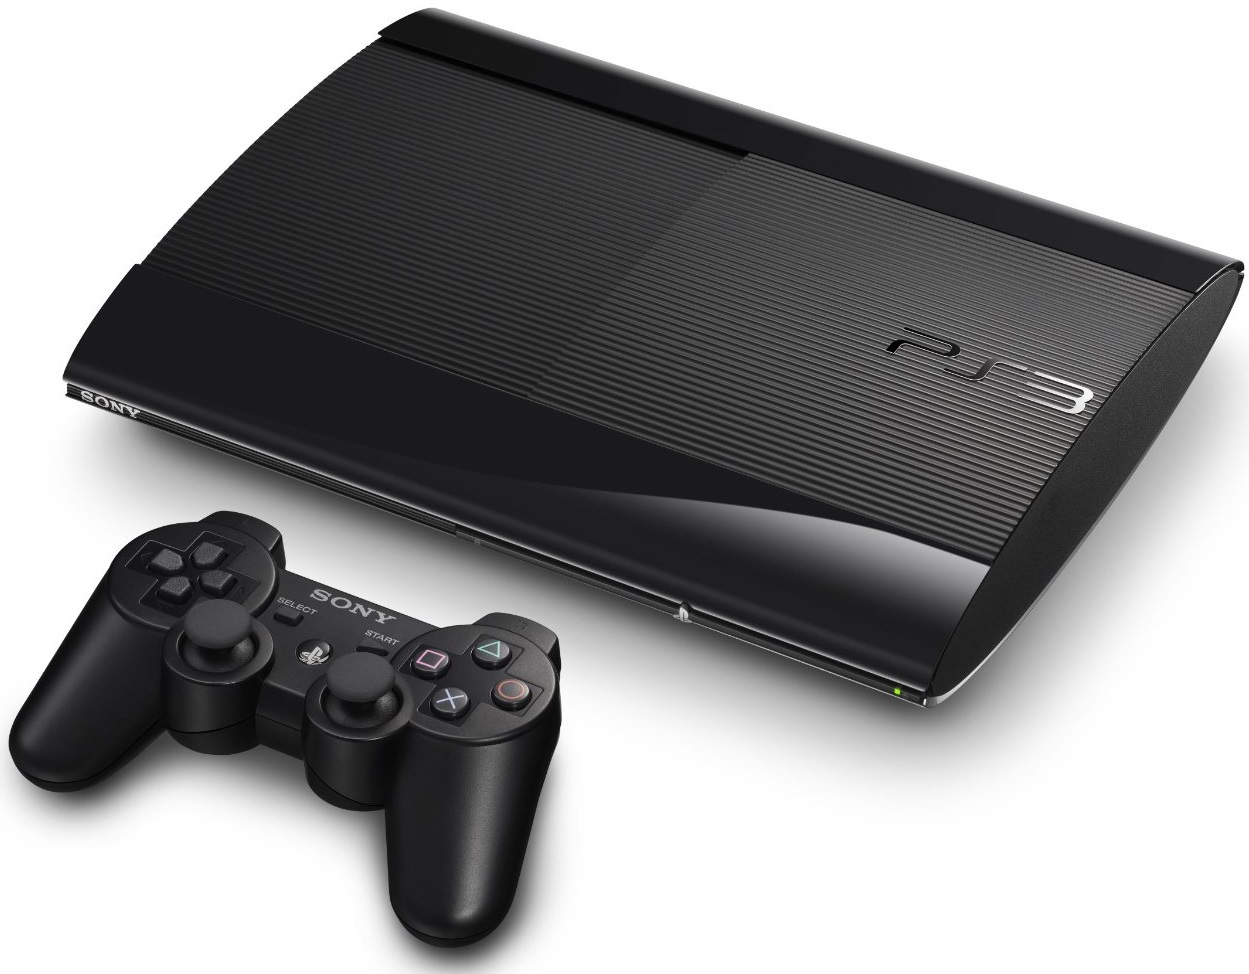 Sony CECH-4003A PS3 12GB Super Slim Console Playstation 3 ...